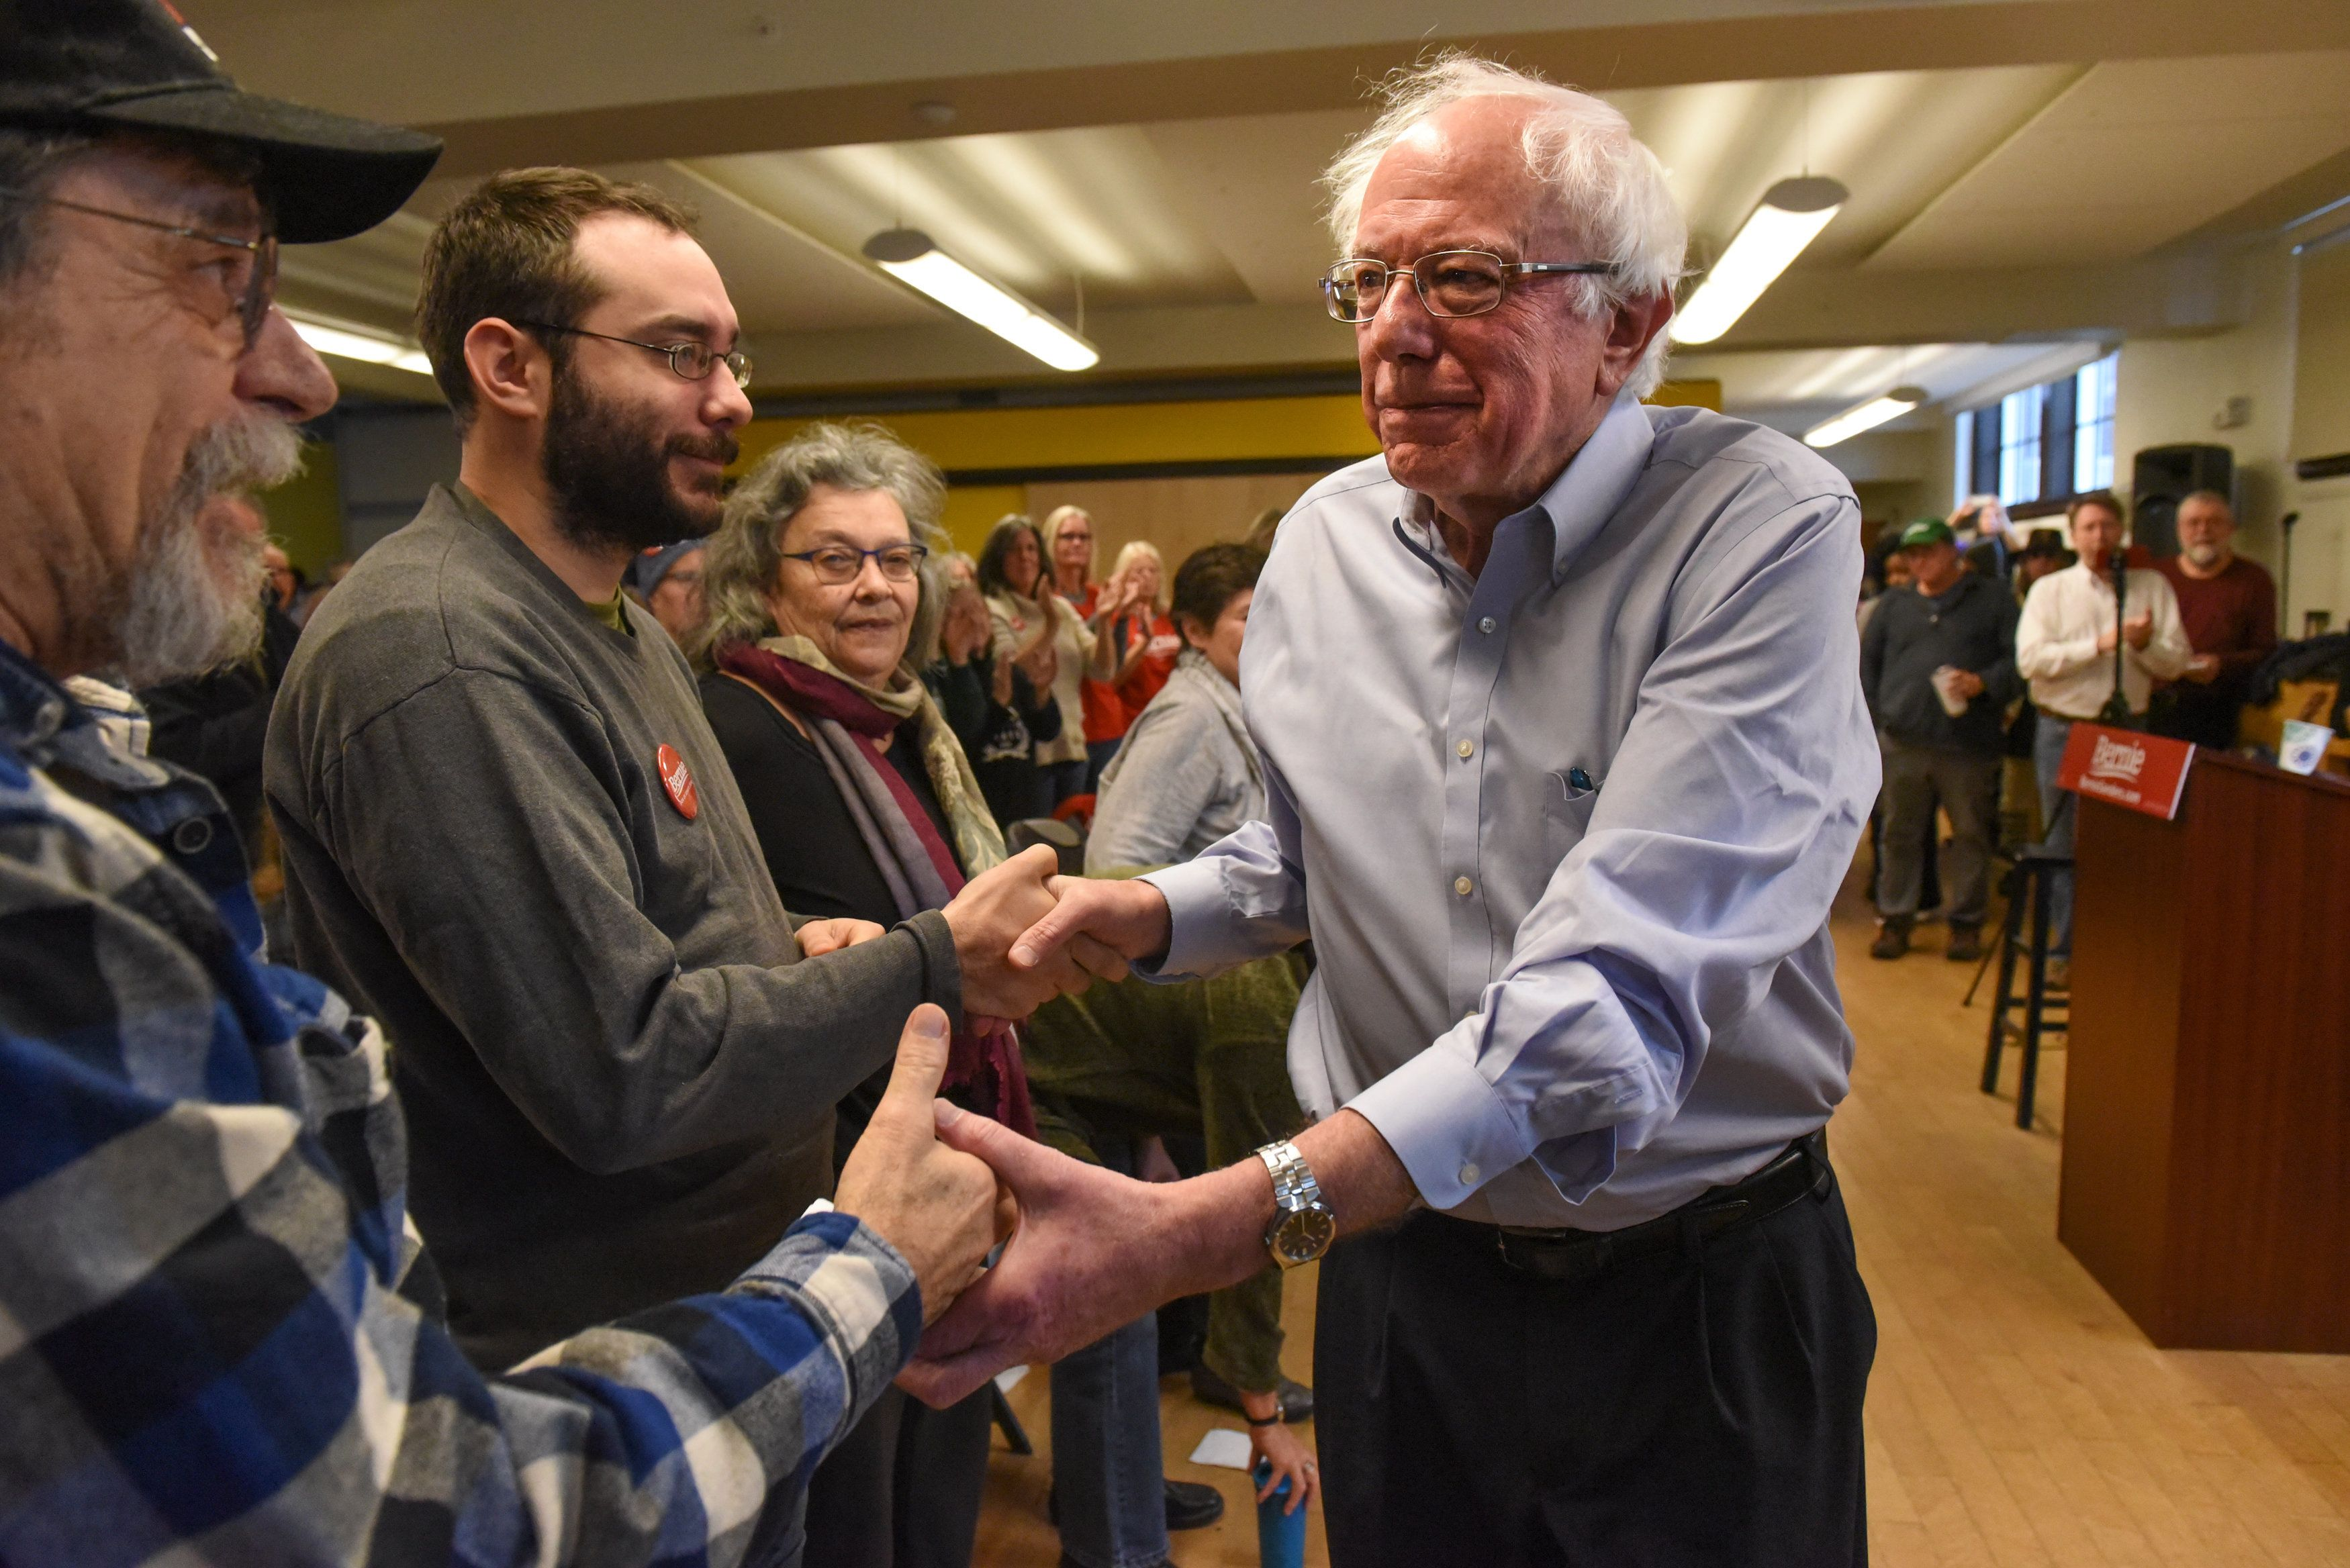 From Amazon to Walmart to Sears: Companies Bernie Sanders has publicly attacked